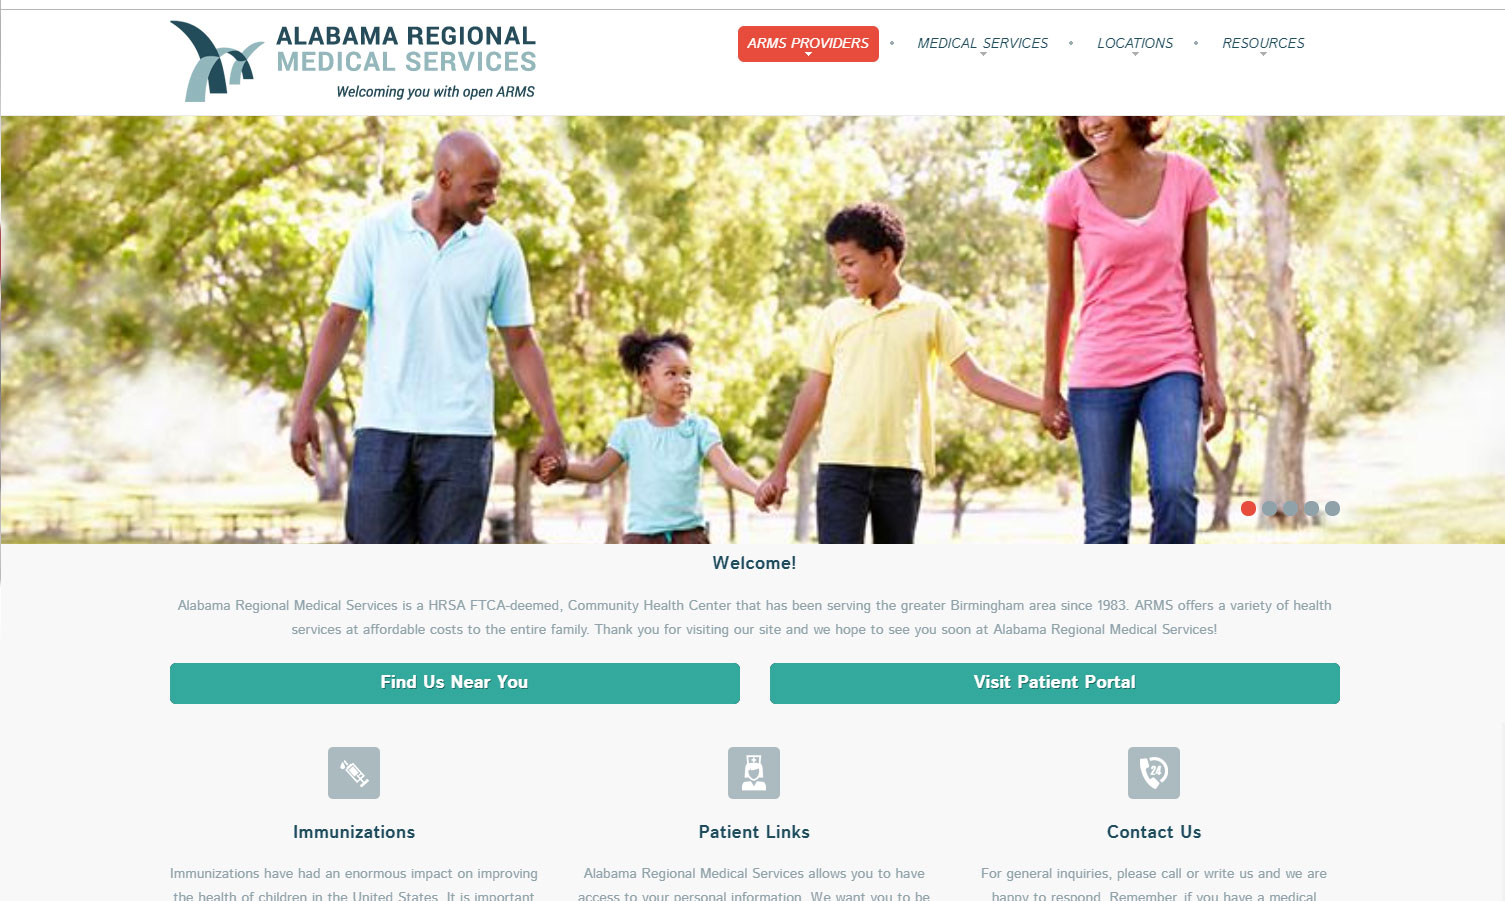 Homepage of Alabama ARMS